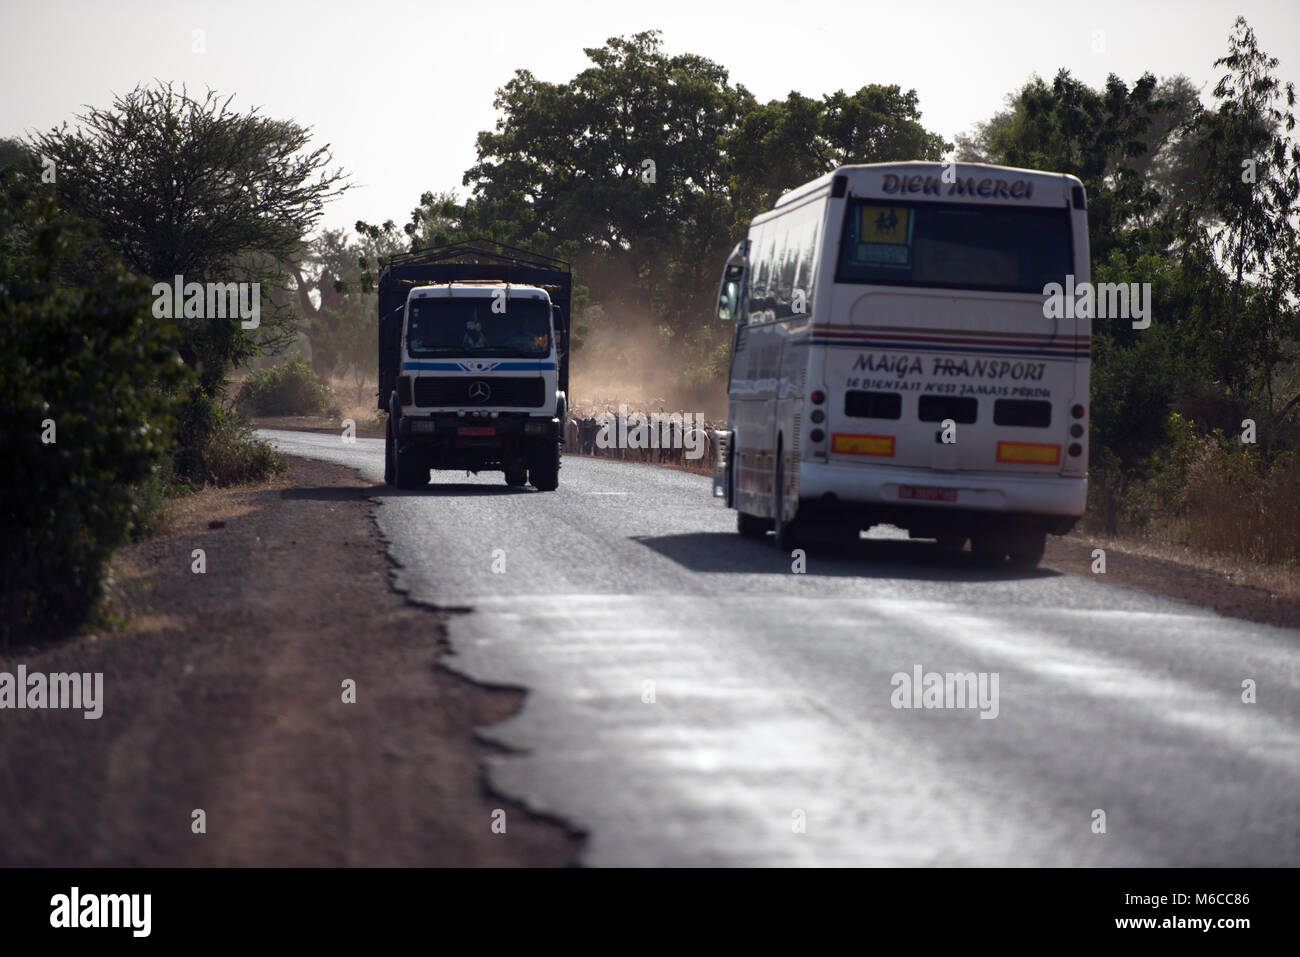 A bus passing a lorry (truck) on the road as indigenous Fulani people herd their cattle in the distance. Mali, West - Stock Image